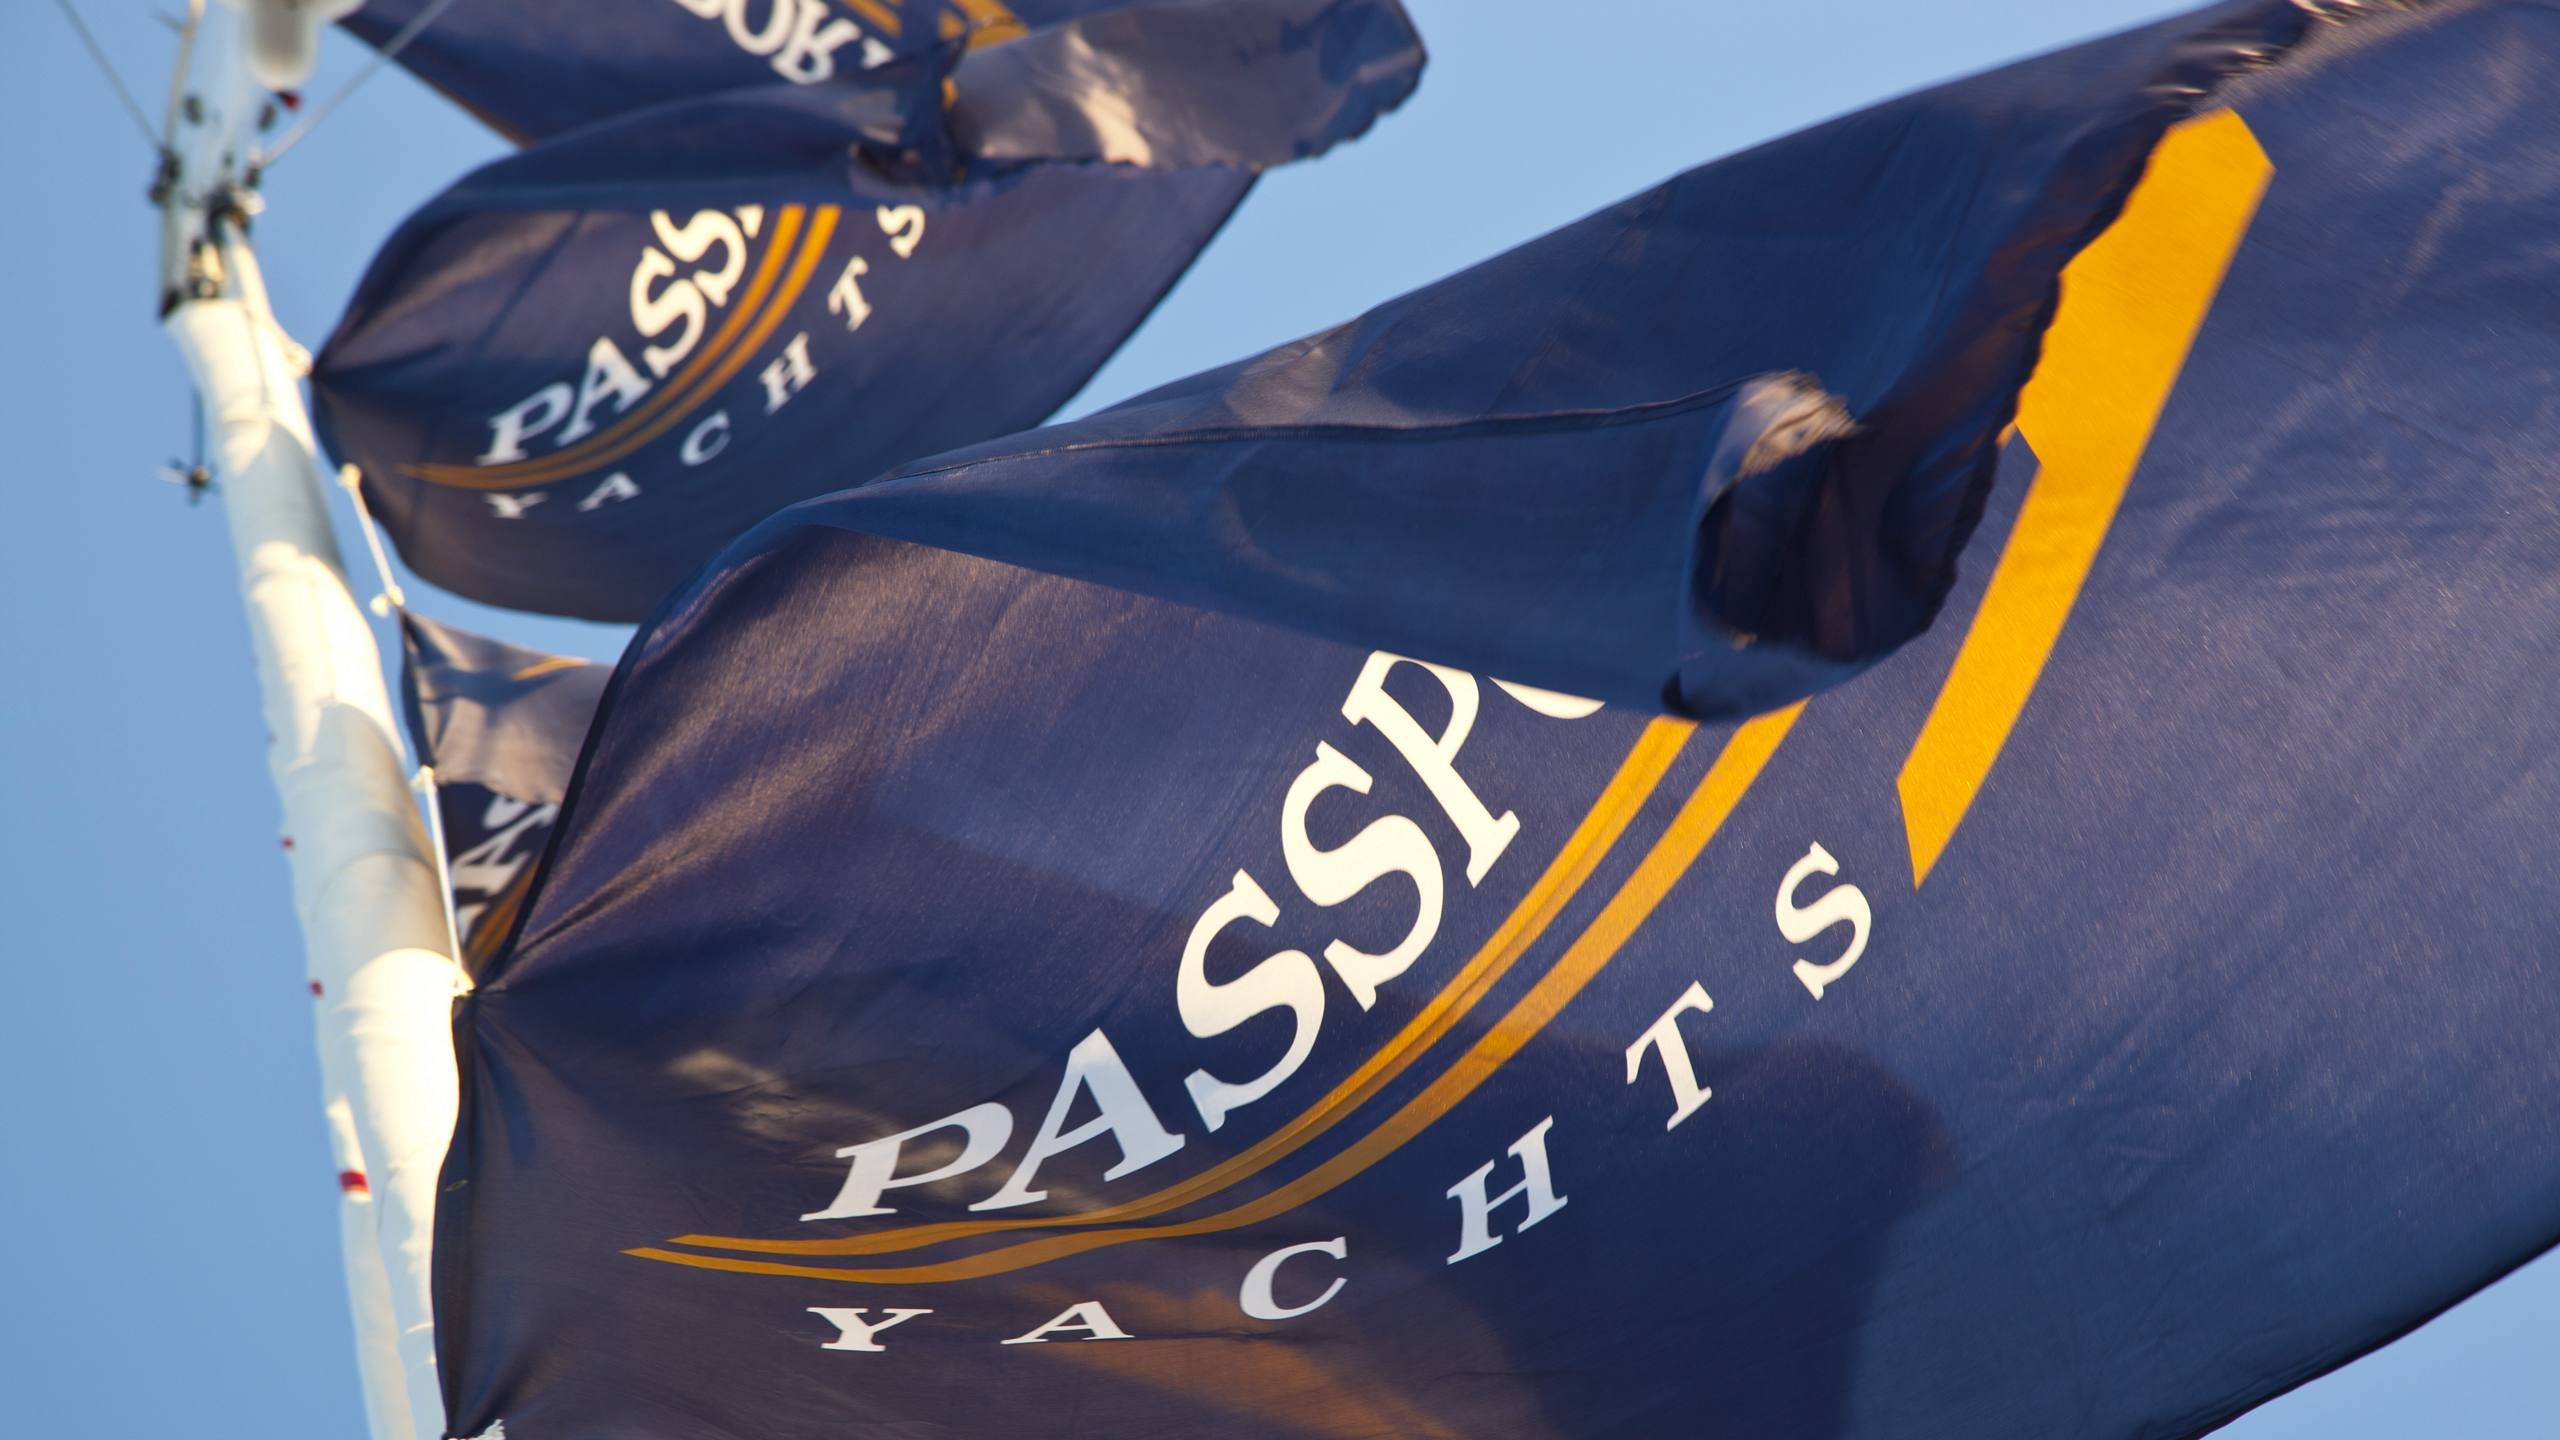 Look for the Passport Yachts flag at an upcoming boat show.